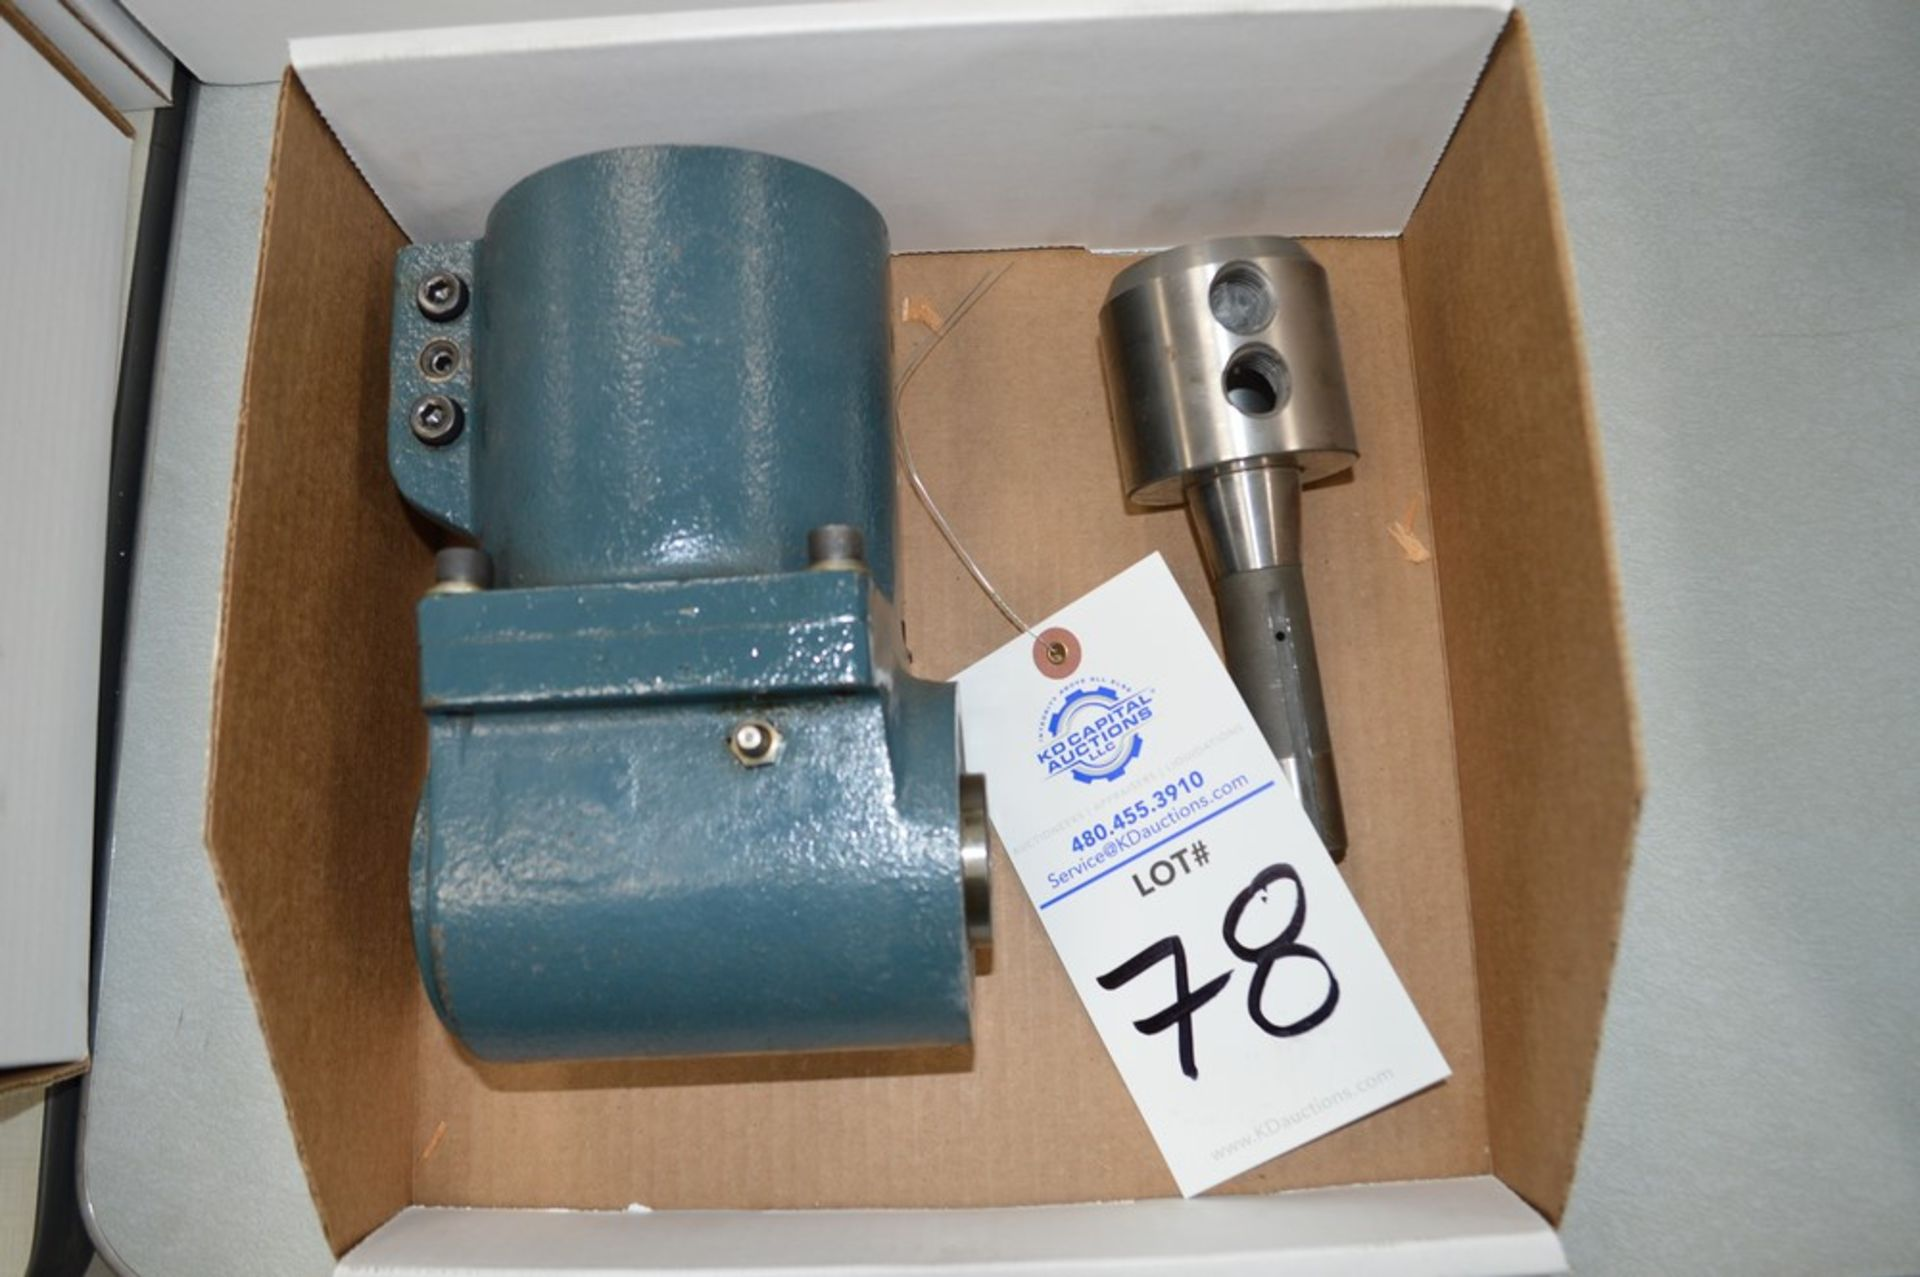 Milling machine R8 right angle drive with adapter to drive Cavlon 100 mm rolling mill (Lot 96)